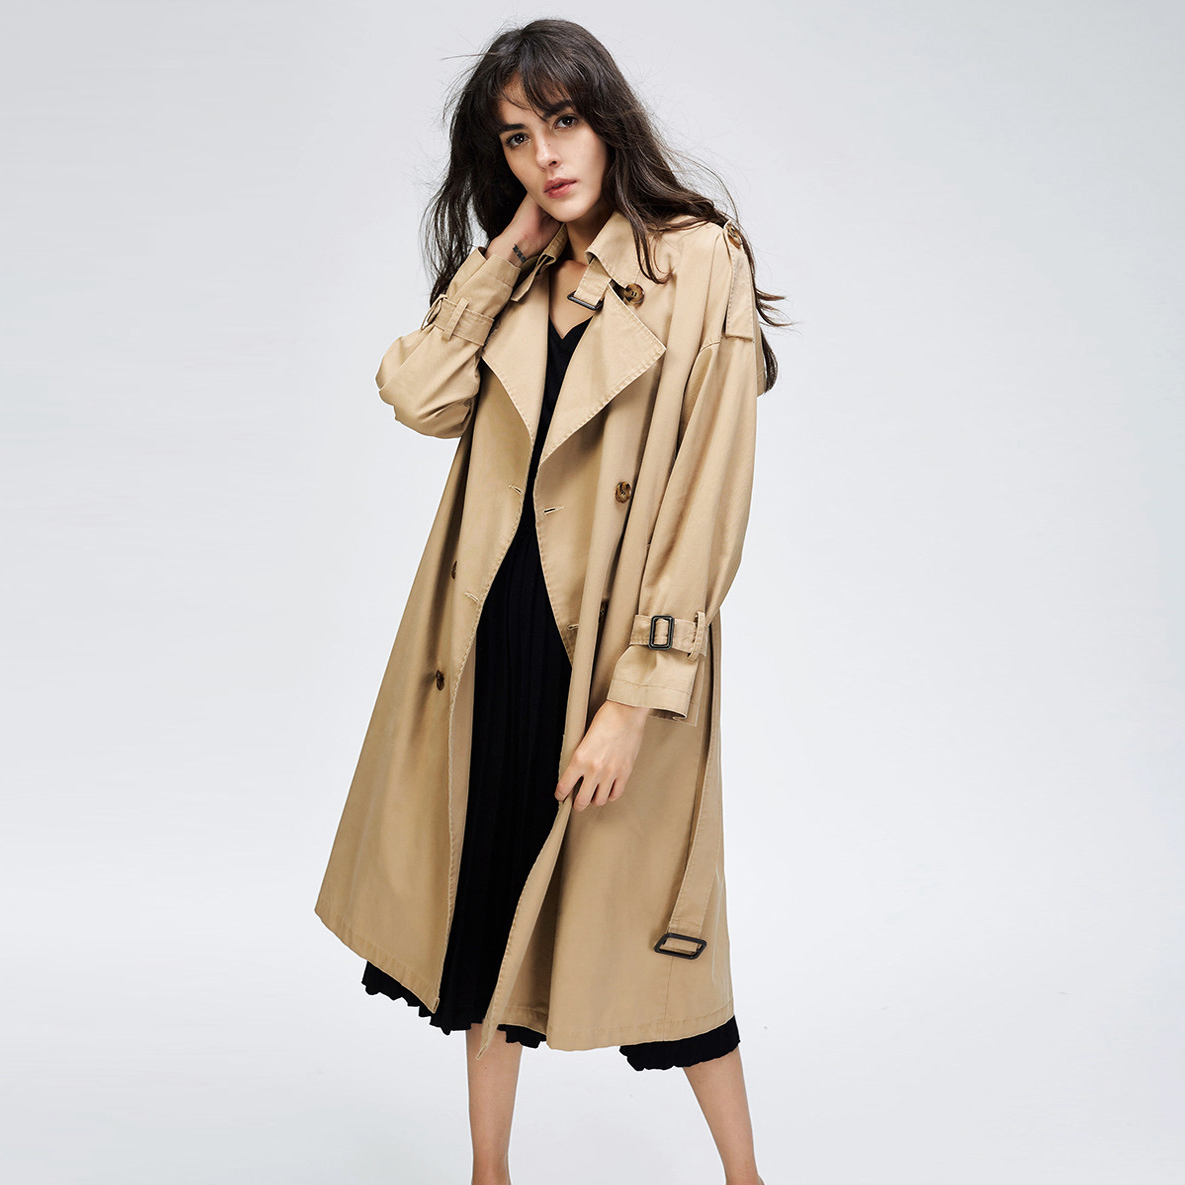 JAZZEVAR 2019 Autumn New Women s Casual trench coat oversize Double Breasted Vintage Washed Outwear Loose